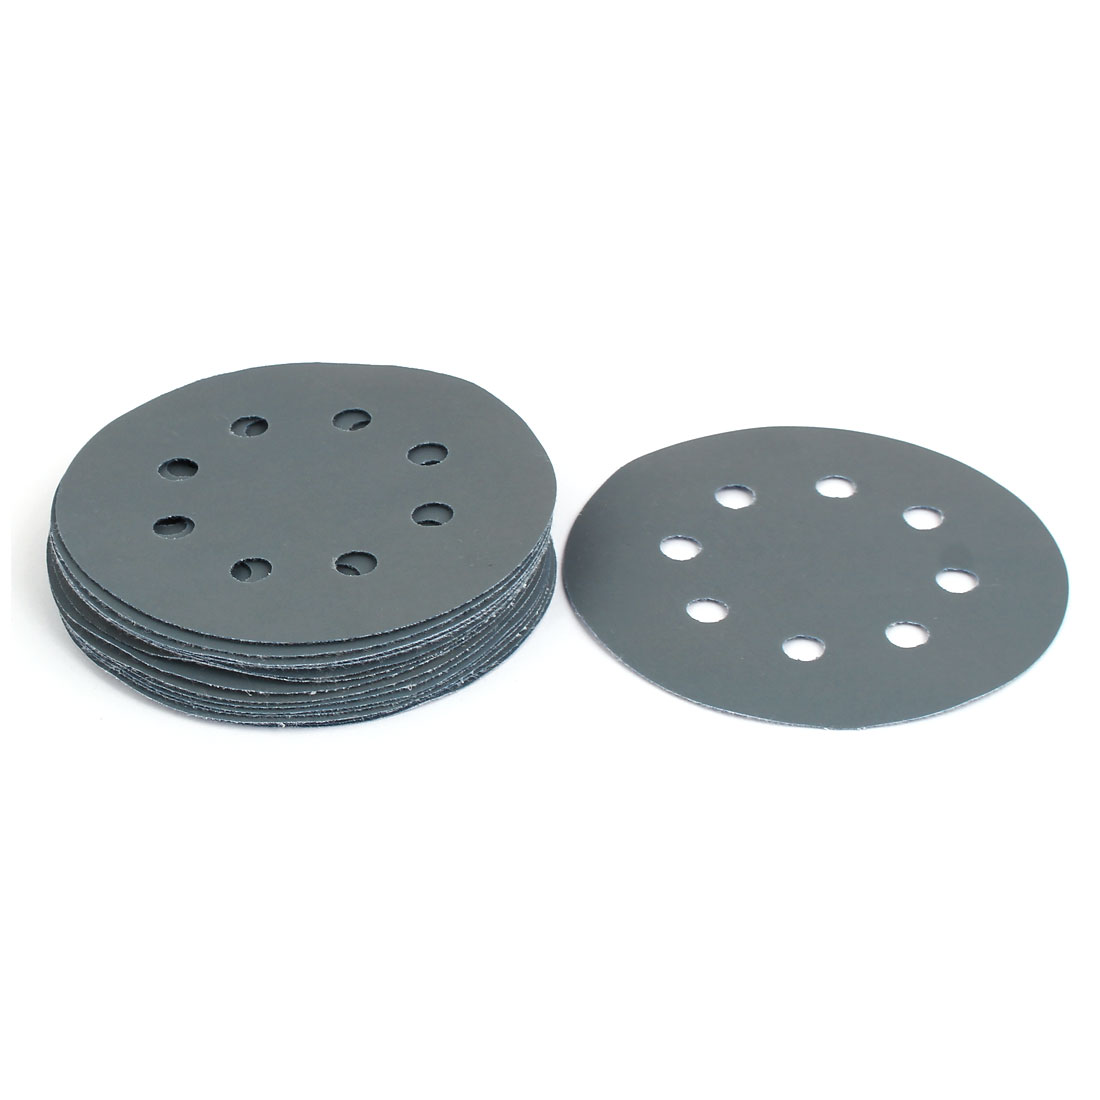 "3000 Grit 8 Hole 5"" Diameter Sandpaper Hook Loop Sanding Disc 15 Pcs"